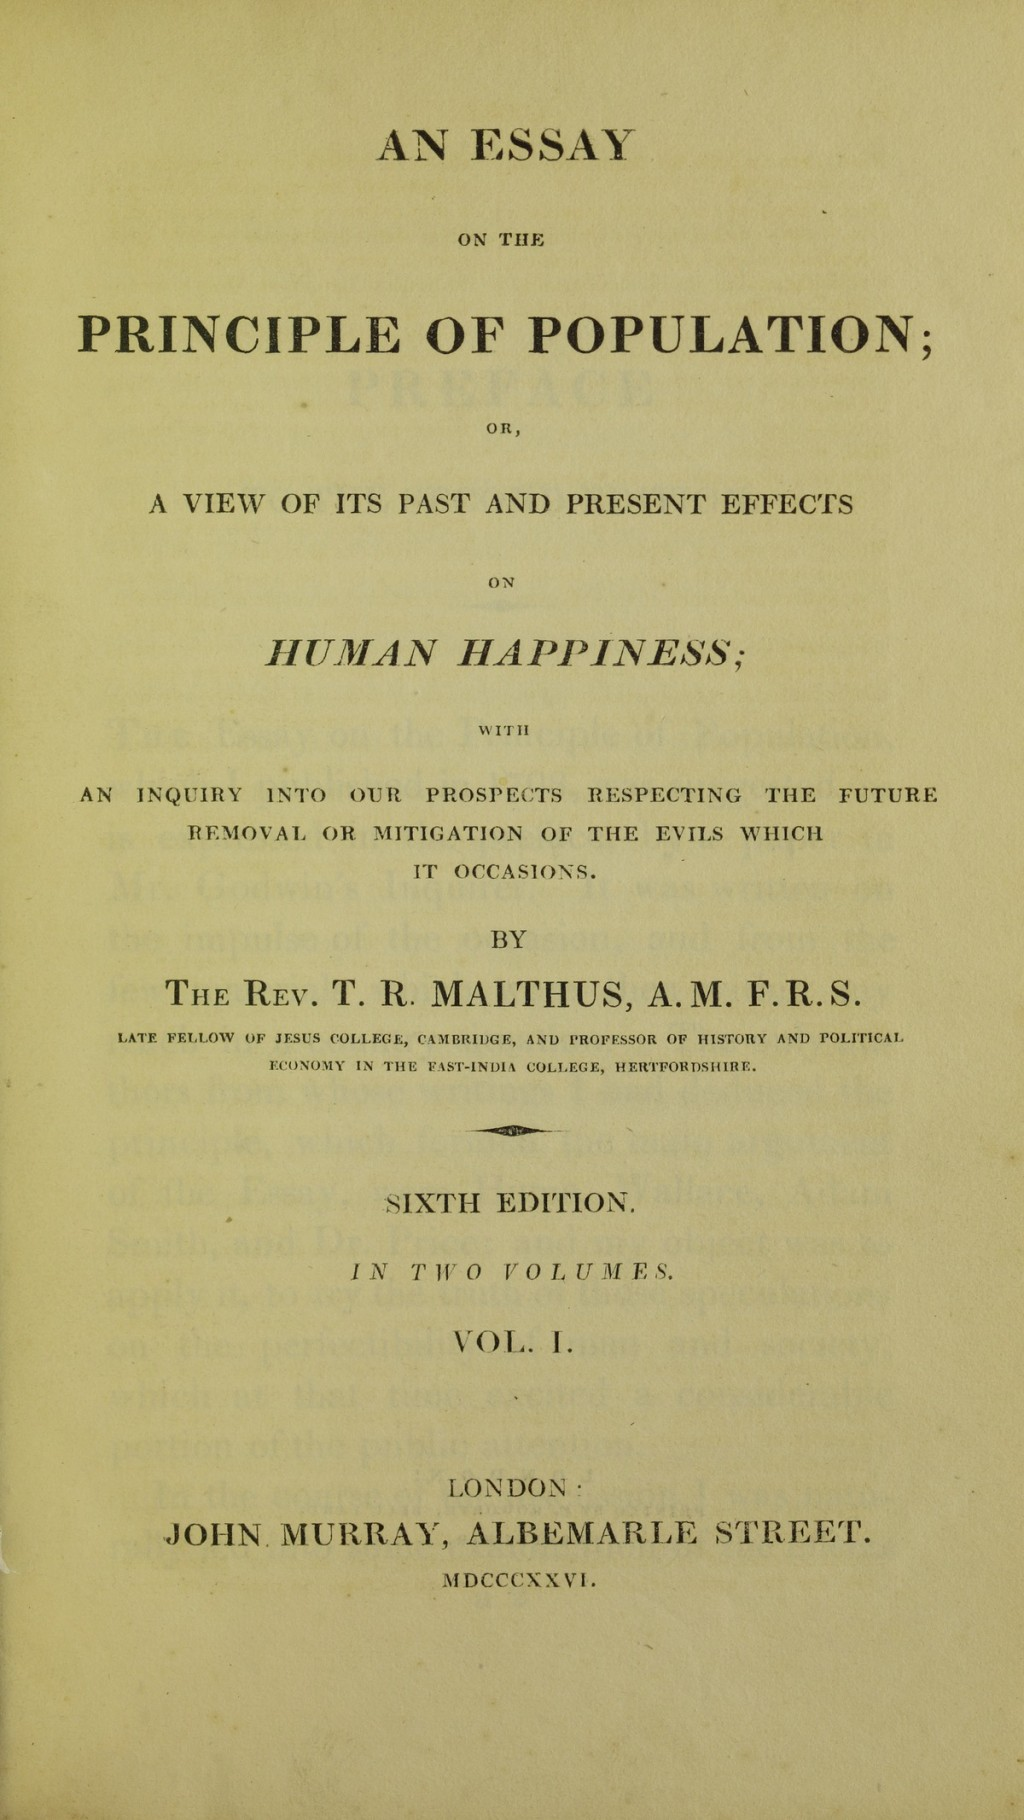 004 Thomas Malthus An Essay On The Principle Of Population Example Lossy Page1 1200px  Population2c 1826 5884843 Marvelous Summary Analysis Argued In His (1798) ThatLarge